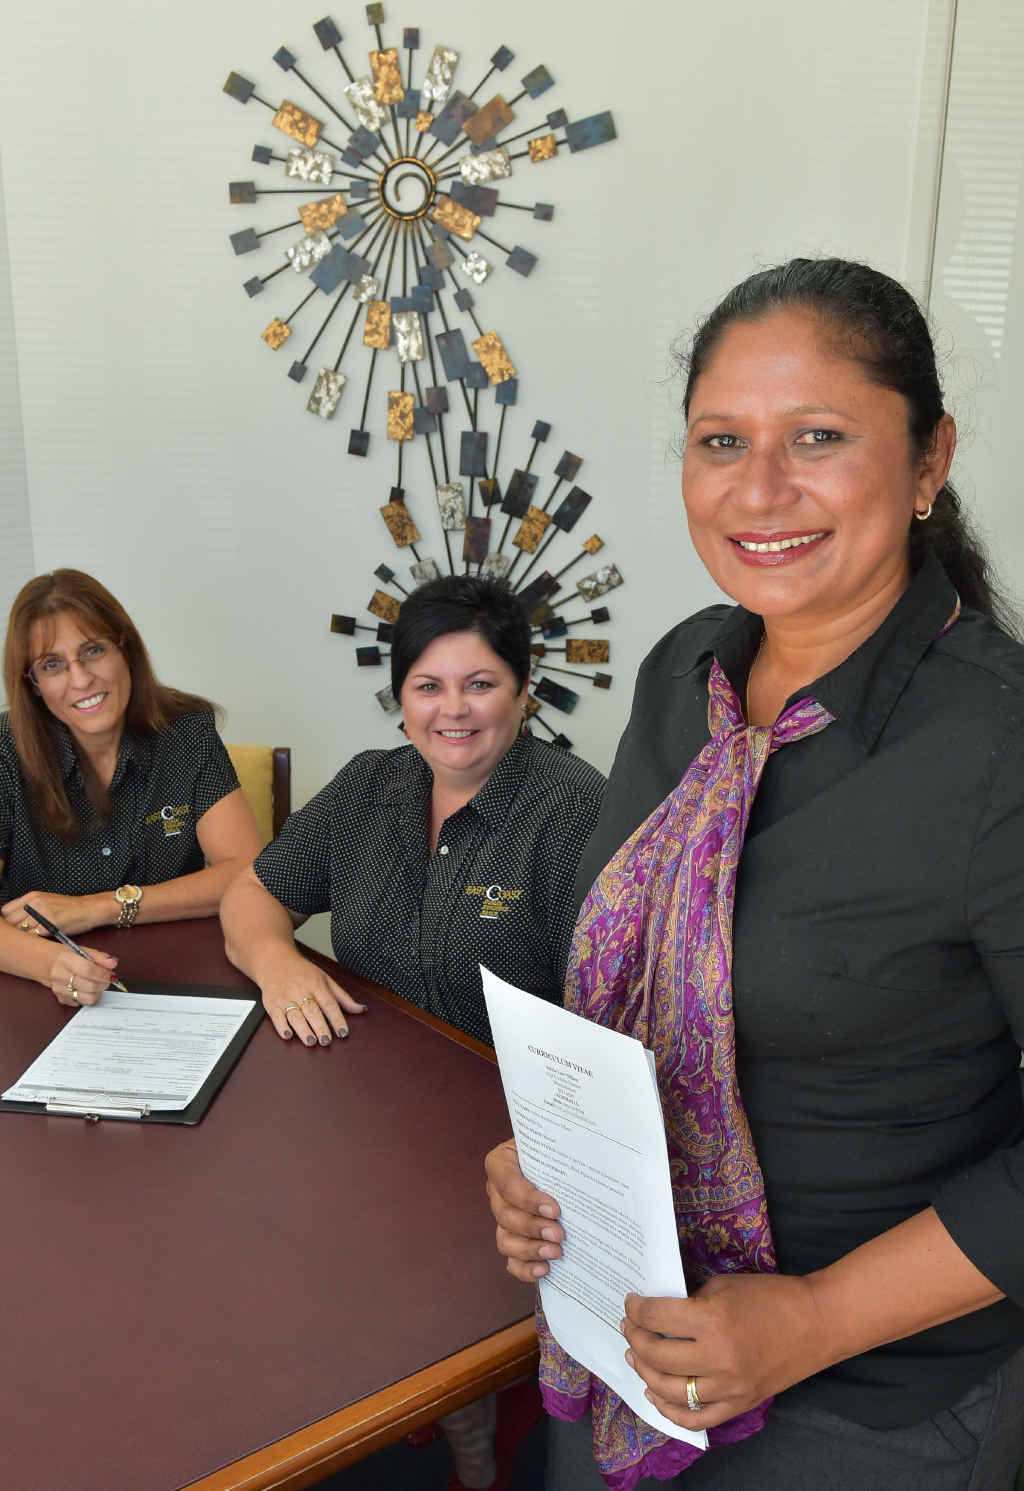 READY TO WORK: Jobseeker Sylvia Tiffany, with Rose Rixon (left) and Michalle Faulkner from East Coast HR.